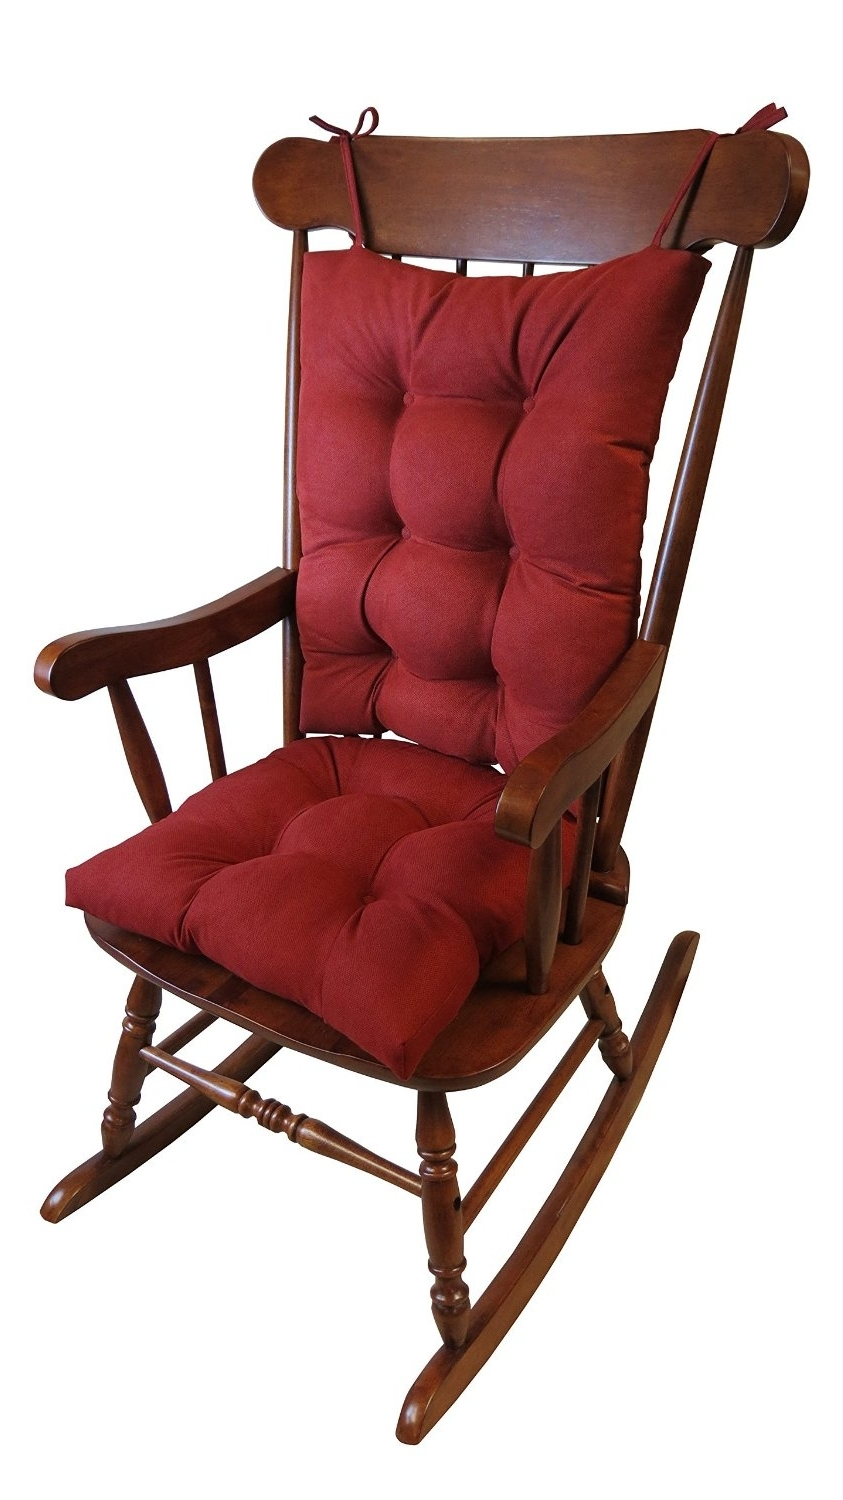 Rocking Chairs With Lumbar Support In Recent Best Rocking Chair Cushions (View 5 of 20)